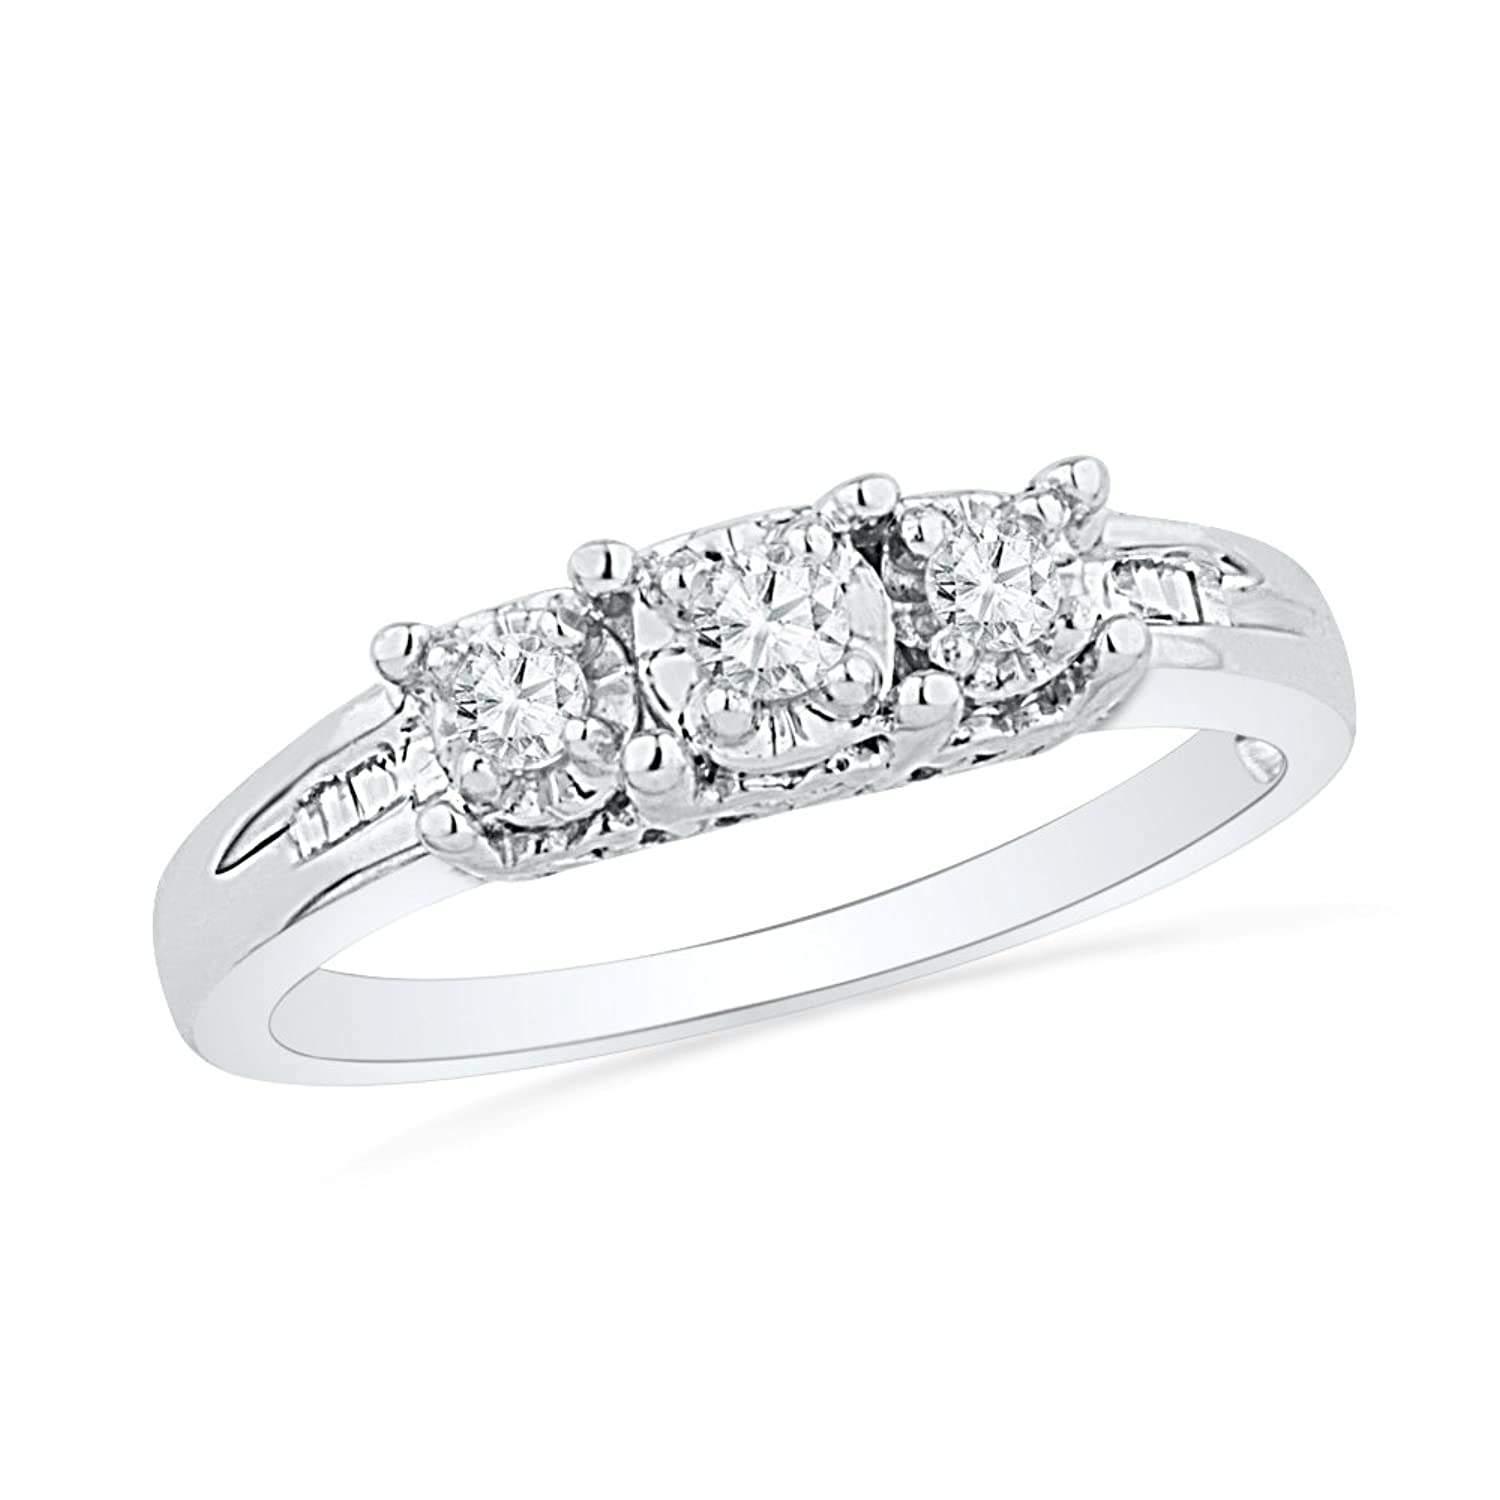 band shared rings design prong halo ring solomon natalie diamond twist engagement with brothers k item e